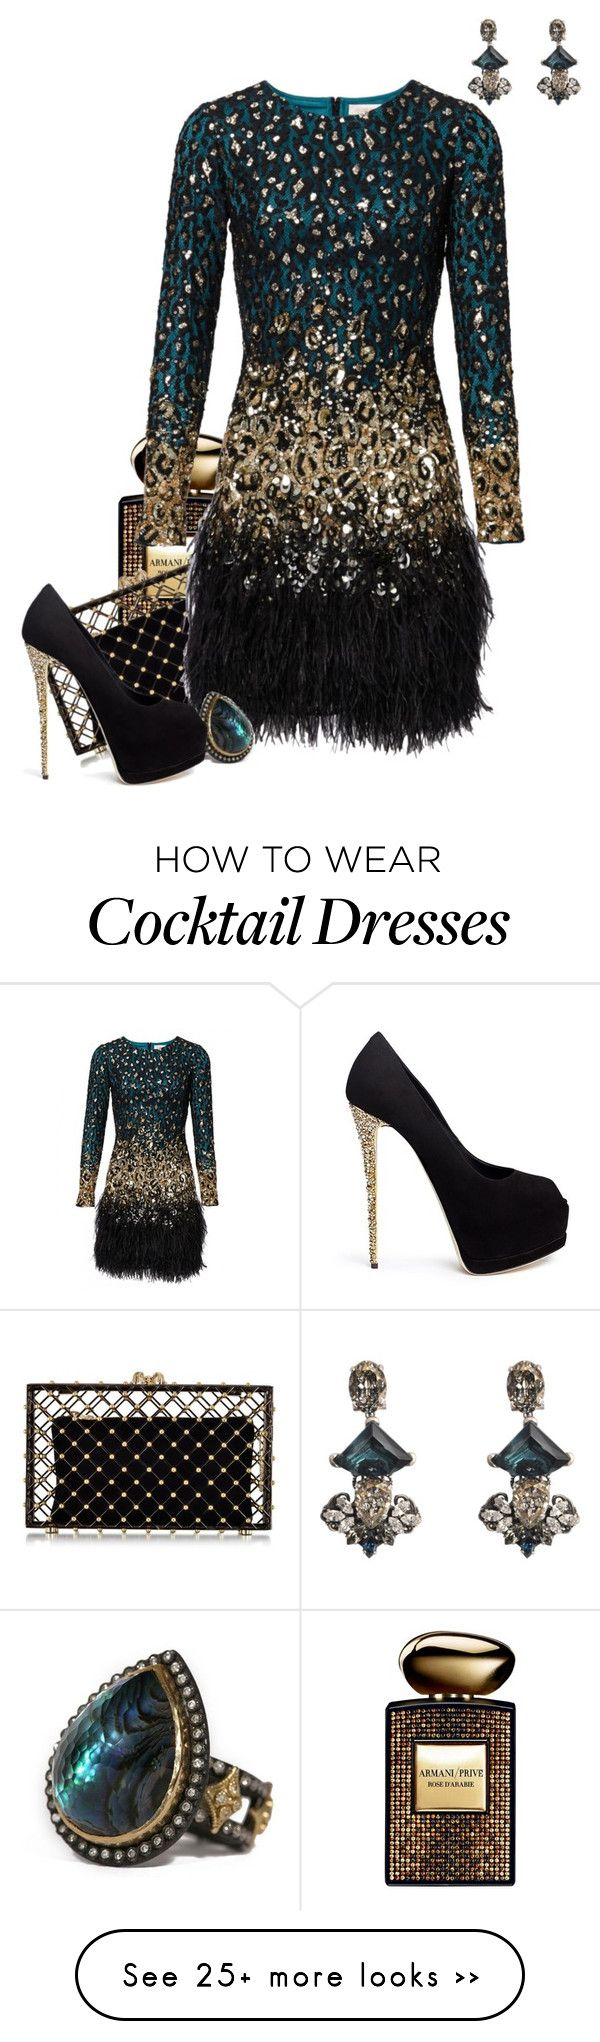 """Leopard Jewels"" by kylen91 on Polyvore featuring Armani Beauty, Charlotte Olympia, Anton Heunis, Armenta and Giuseppe Zanotti"